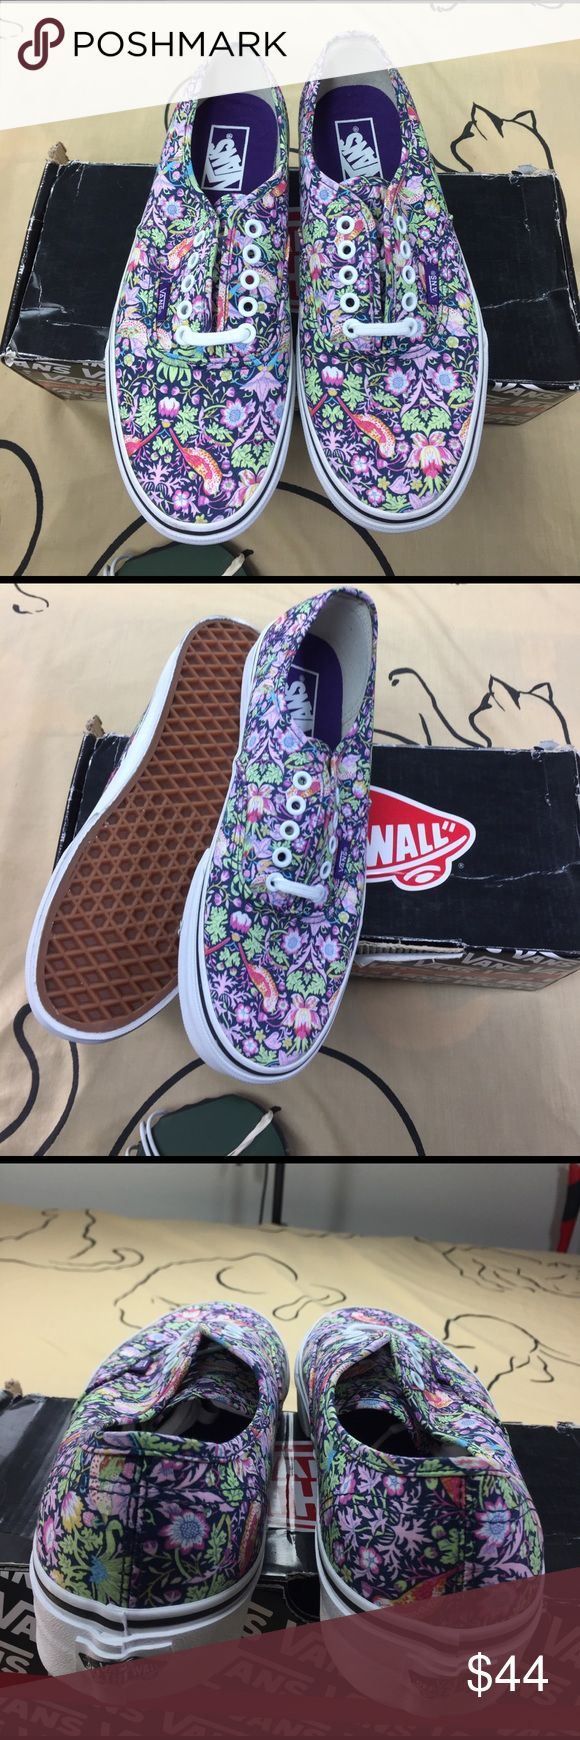 Vans Authentic Liberty Birds/navy The Authentic, the original and now iconic Vans style, features a simple low top profile, with sturdy canvas uppers, special metal eyelets, and signature waffle sole. The Authentic is a Classic and timeless silhouette everyone loves. Vans Shoes Sneakers